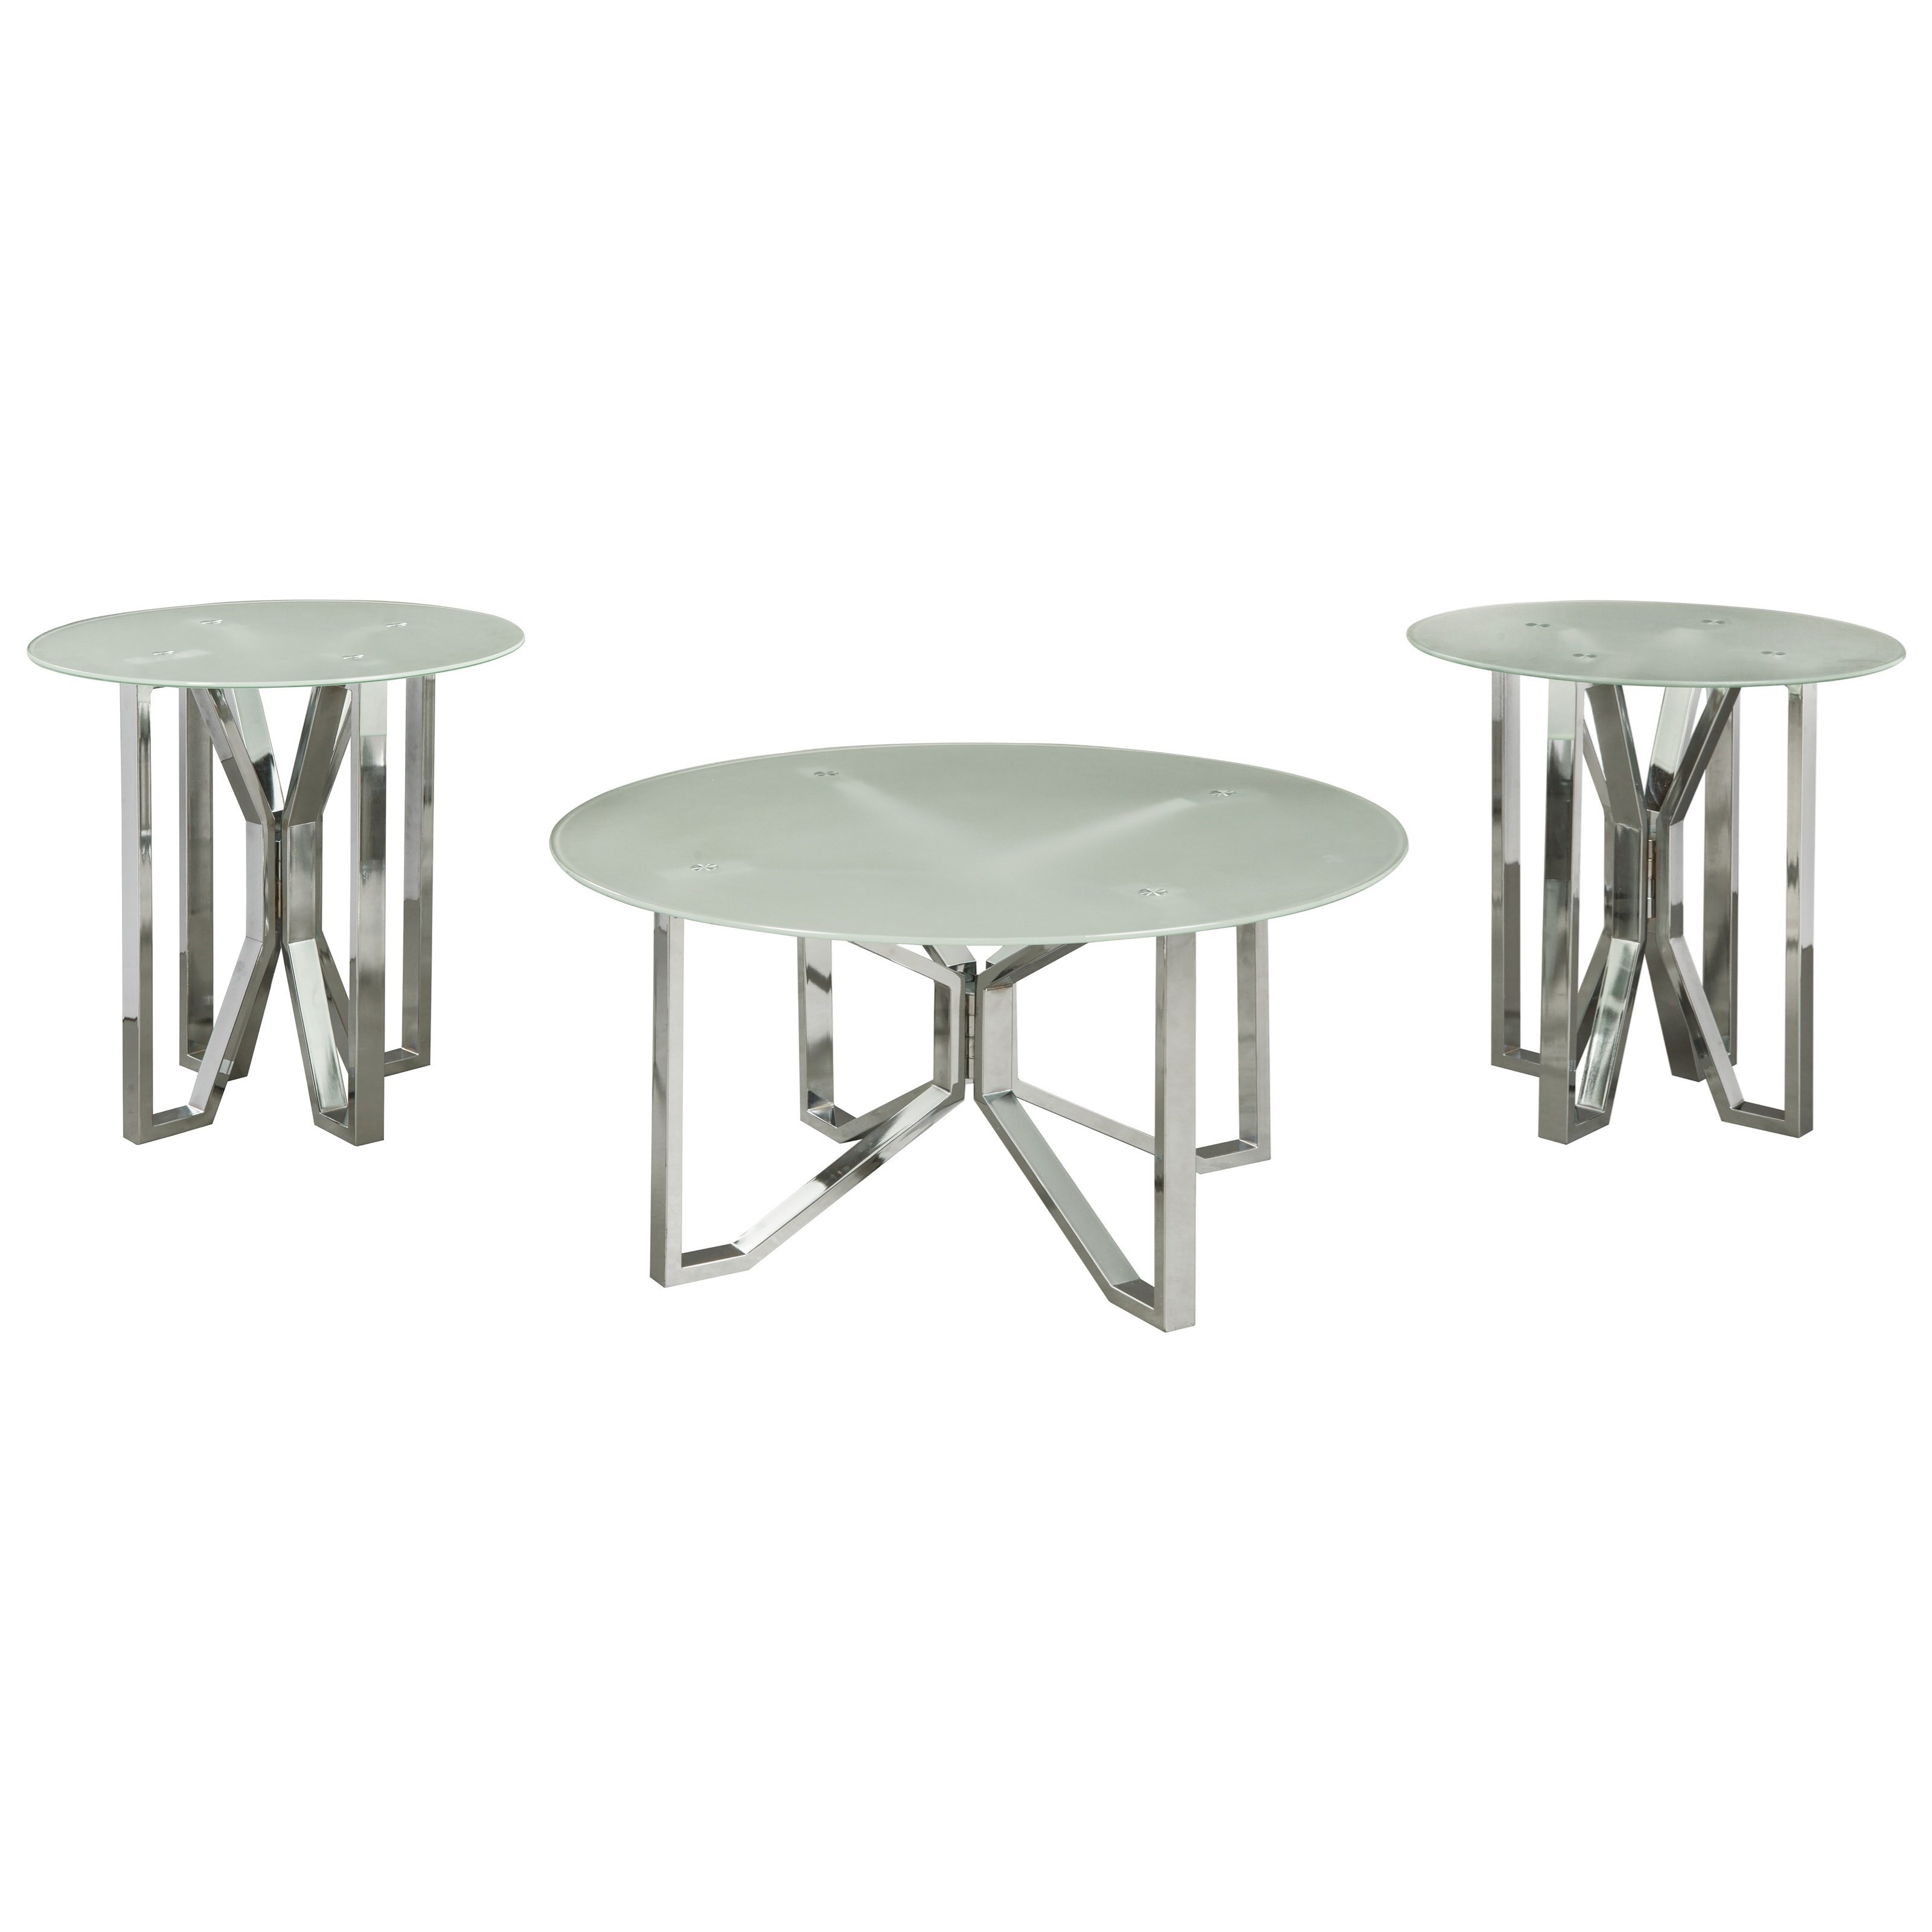 Signature Design by Ashley Tangeline3 Piece Occasional Table Set ...  sc 1 st  Royal Furniture & Signature Design by Ashley Tangeline Glam three Piece Occasional ...